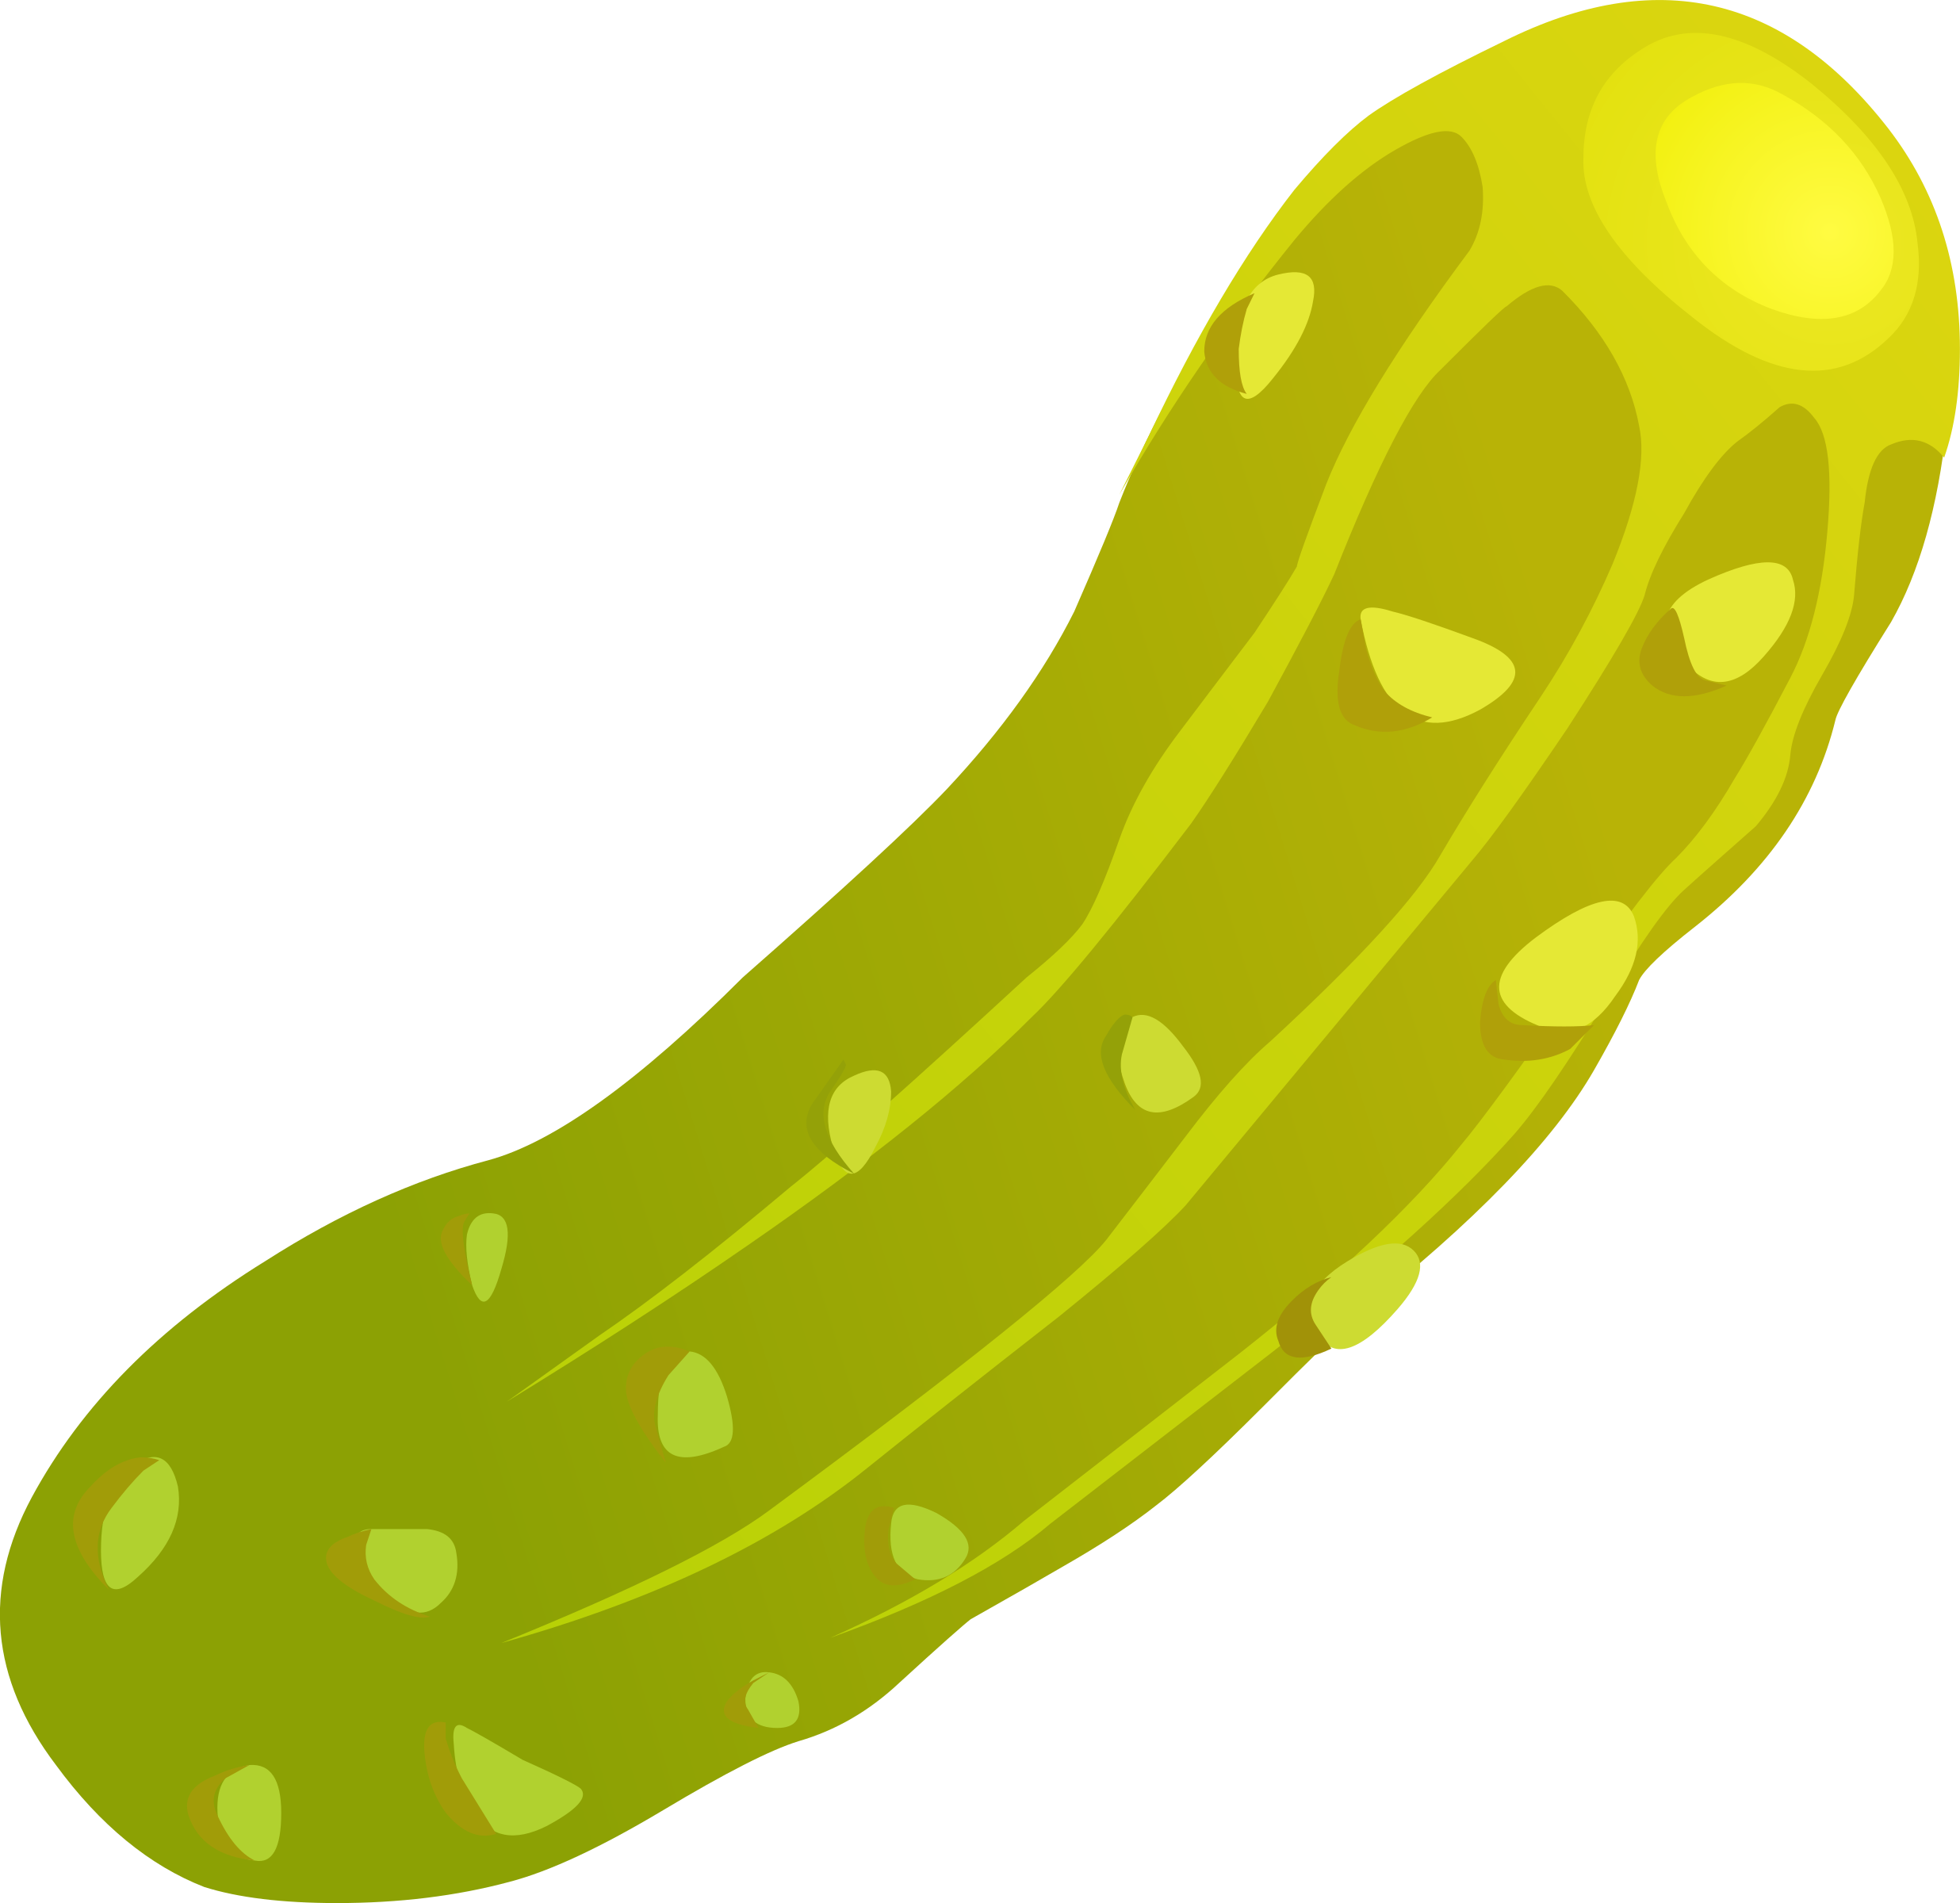 Free pickles cliparts download. Pickle clipart black and white